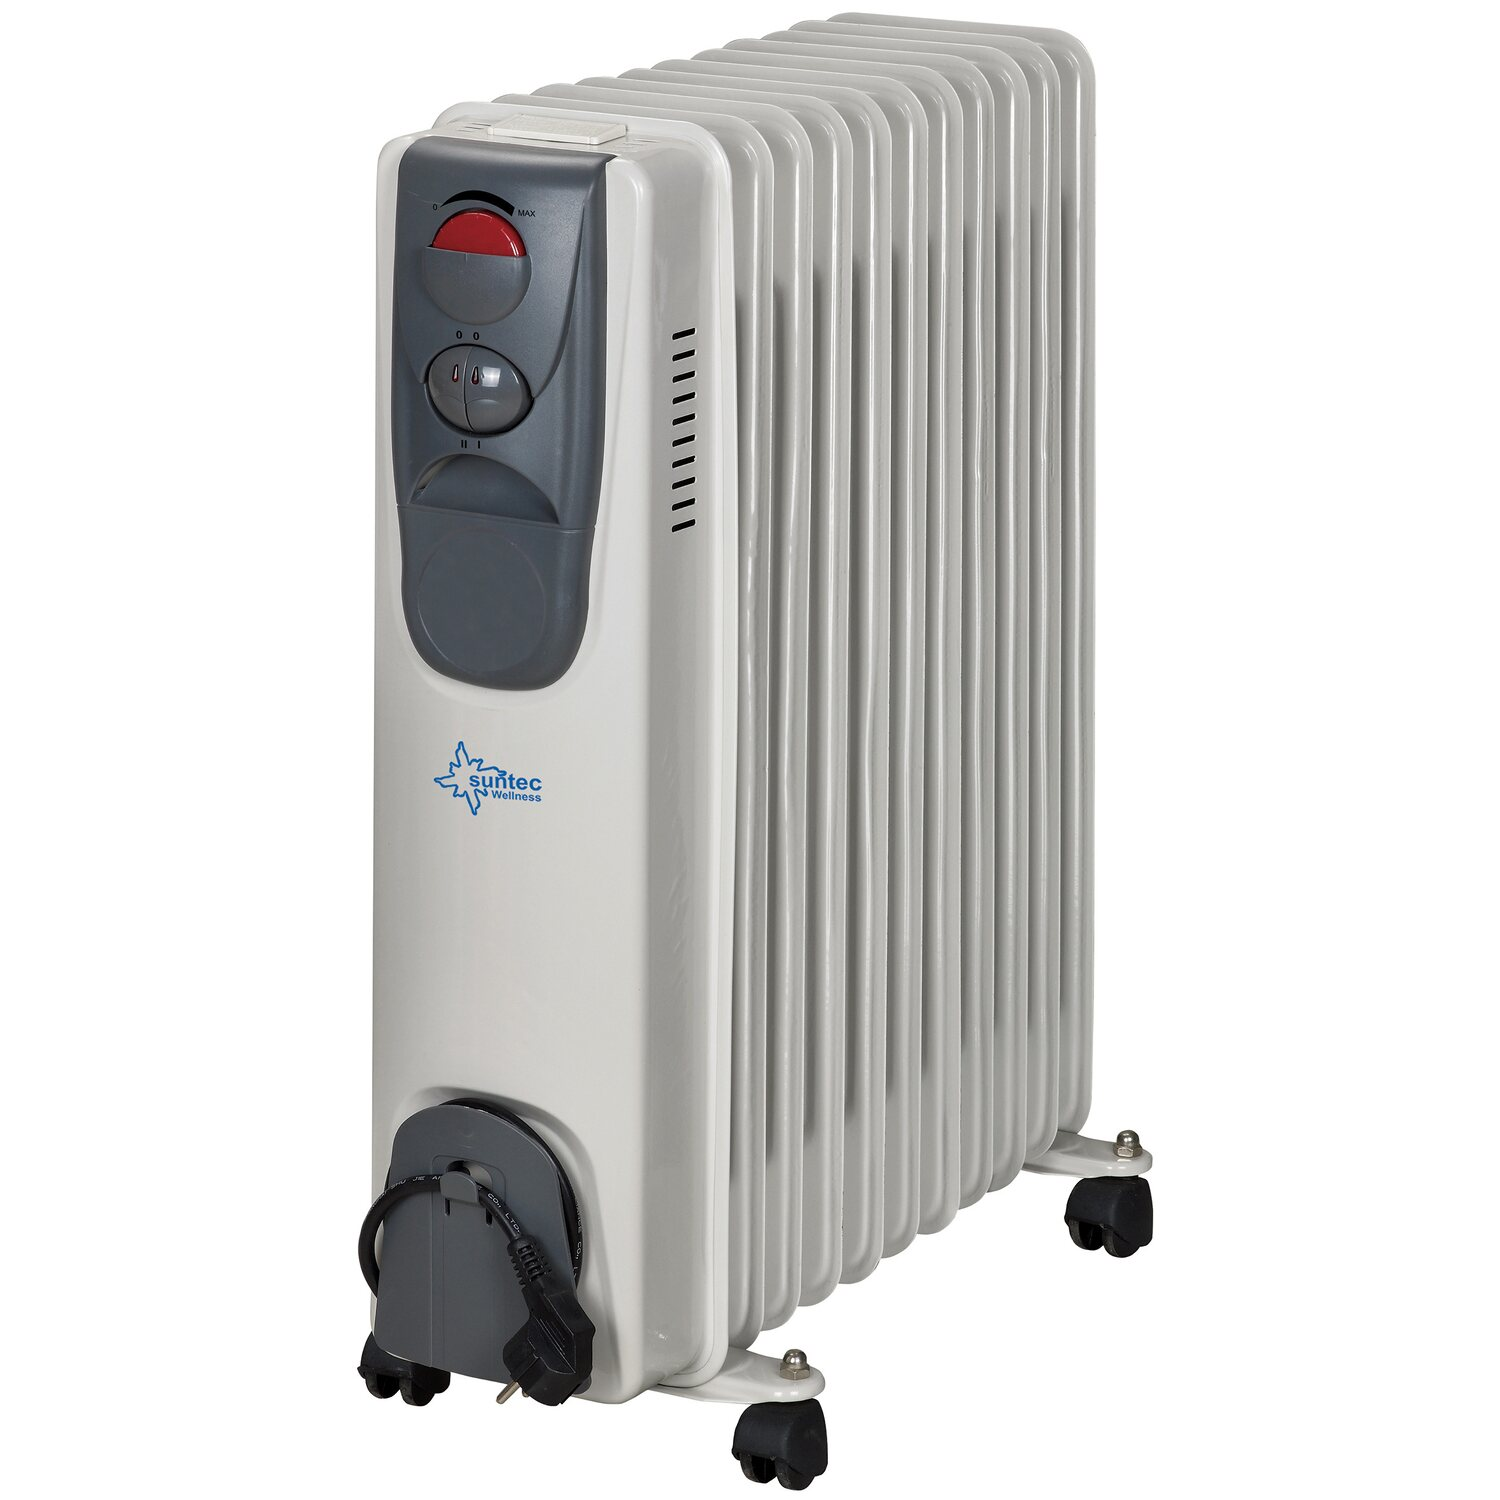 Suntec Radiator Heat Safe 2.500 W